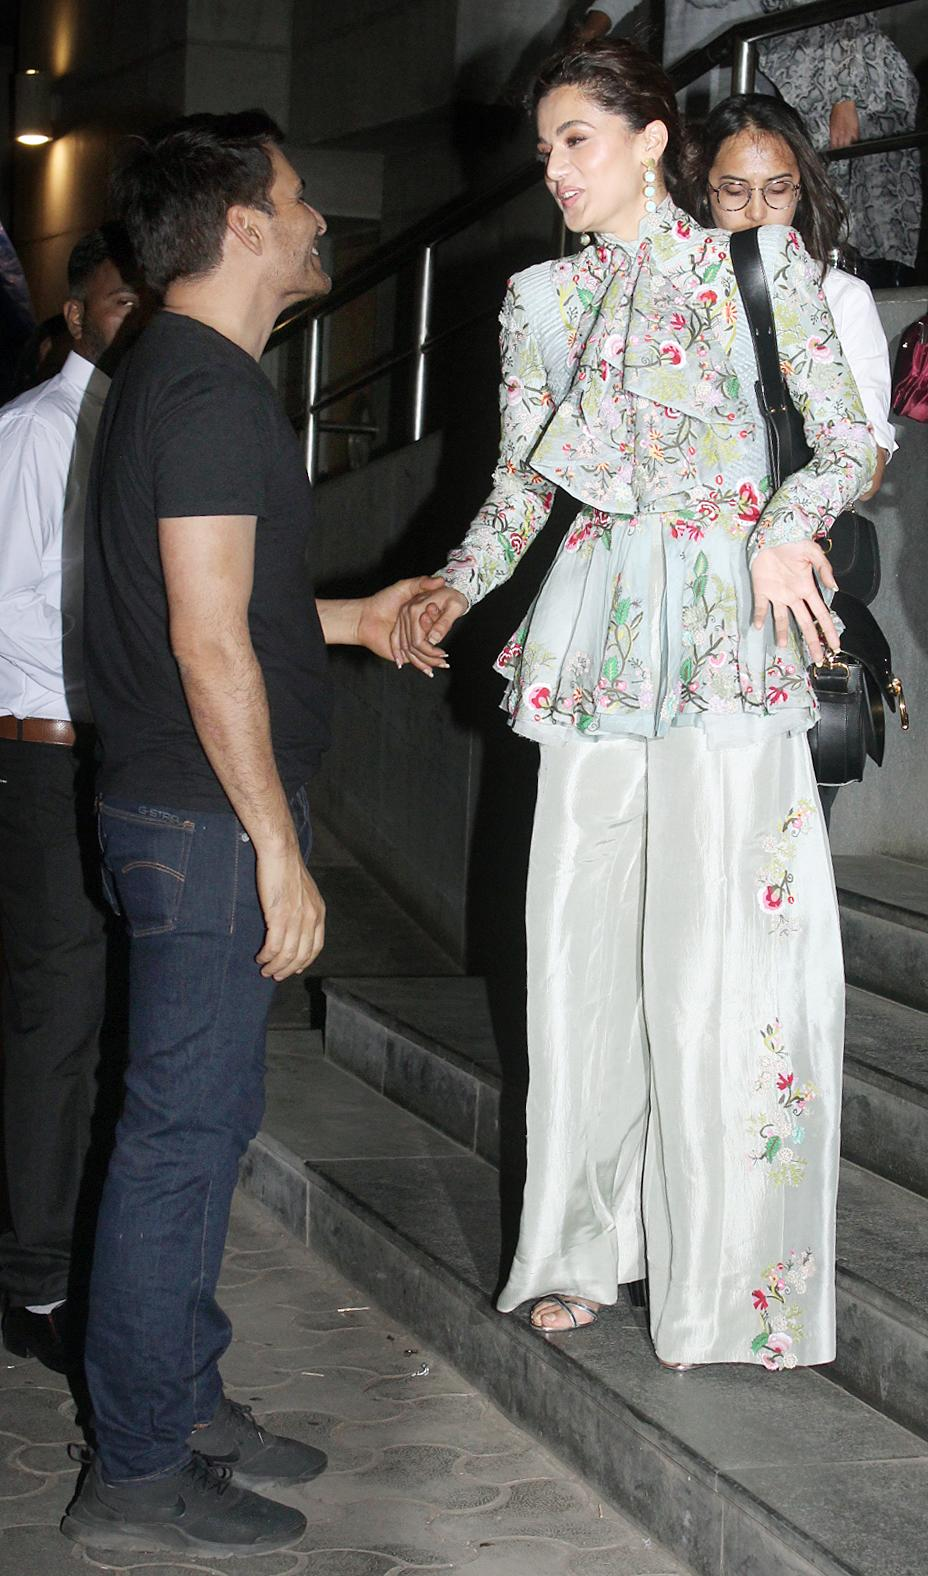 Manav Kaul and Tapsee Pannu greet each other at the screening. Their characters are central to <i>Thappad</i>.